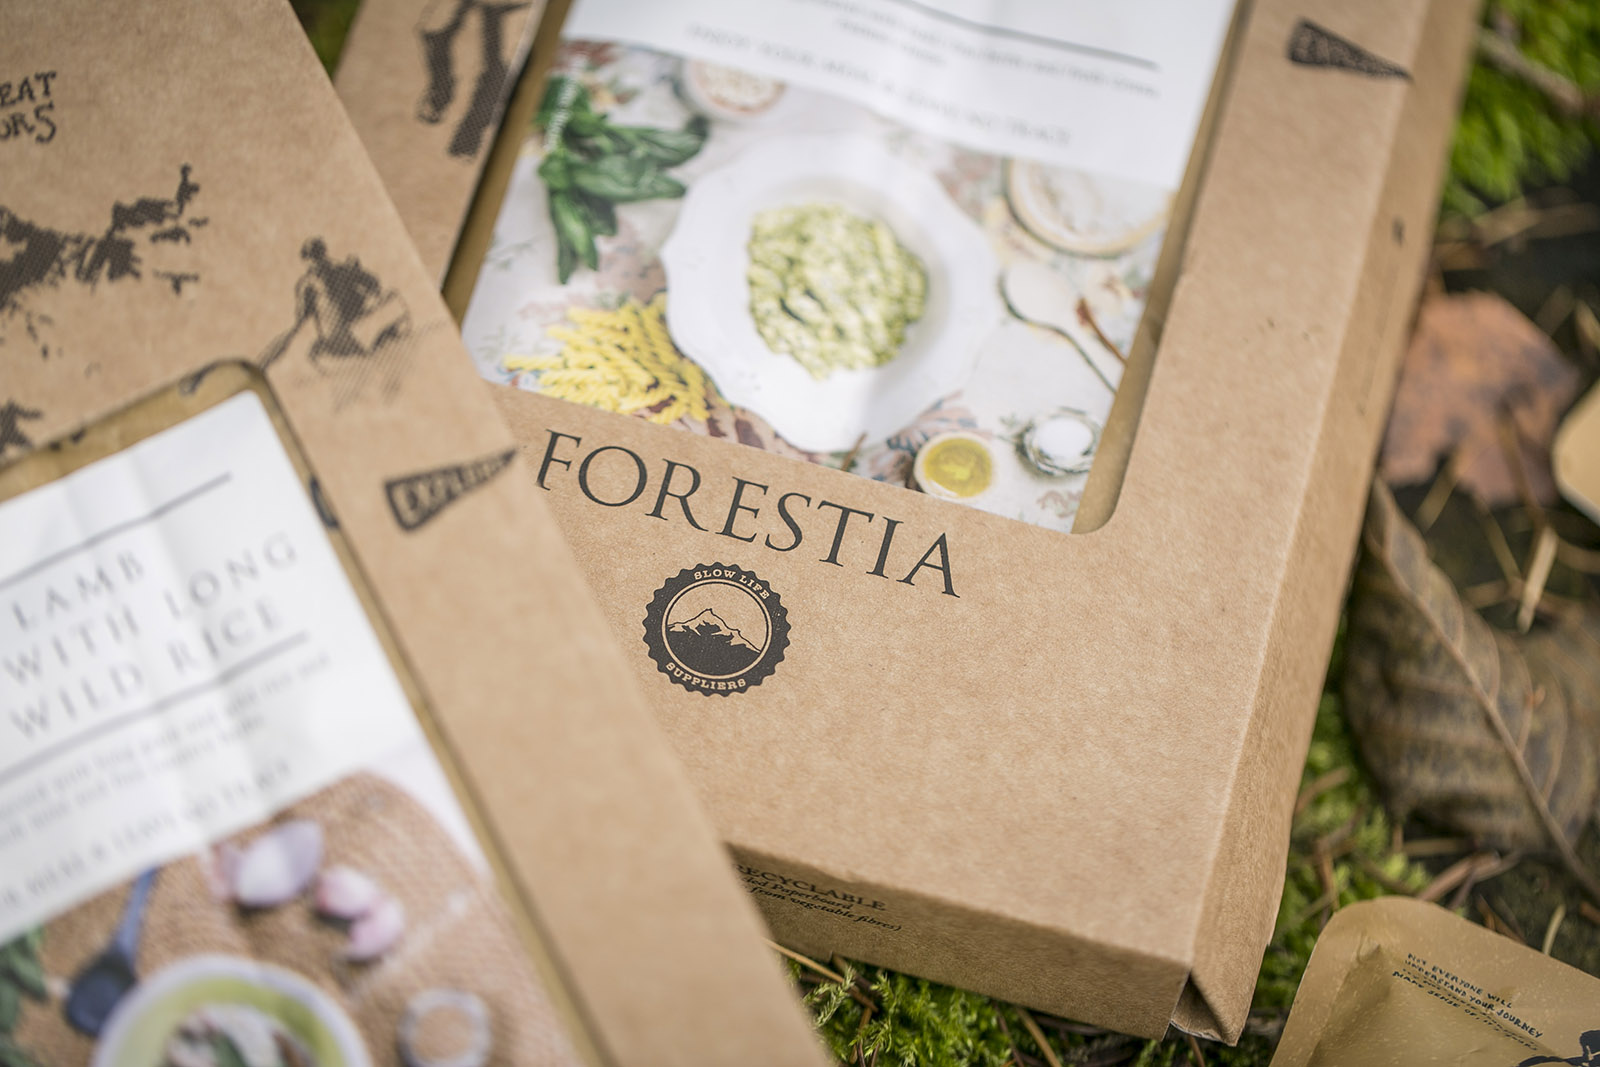 forestia-outdoor-meals-08